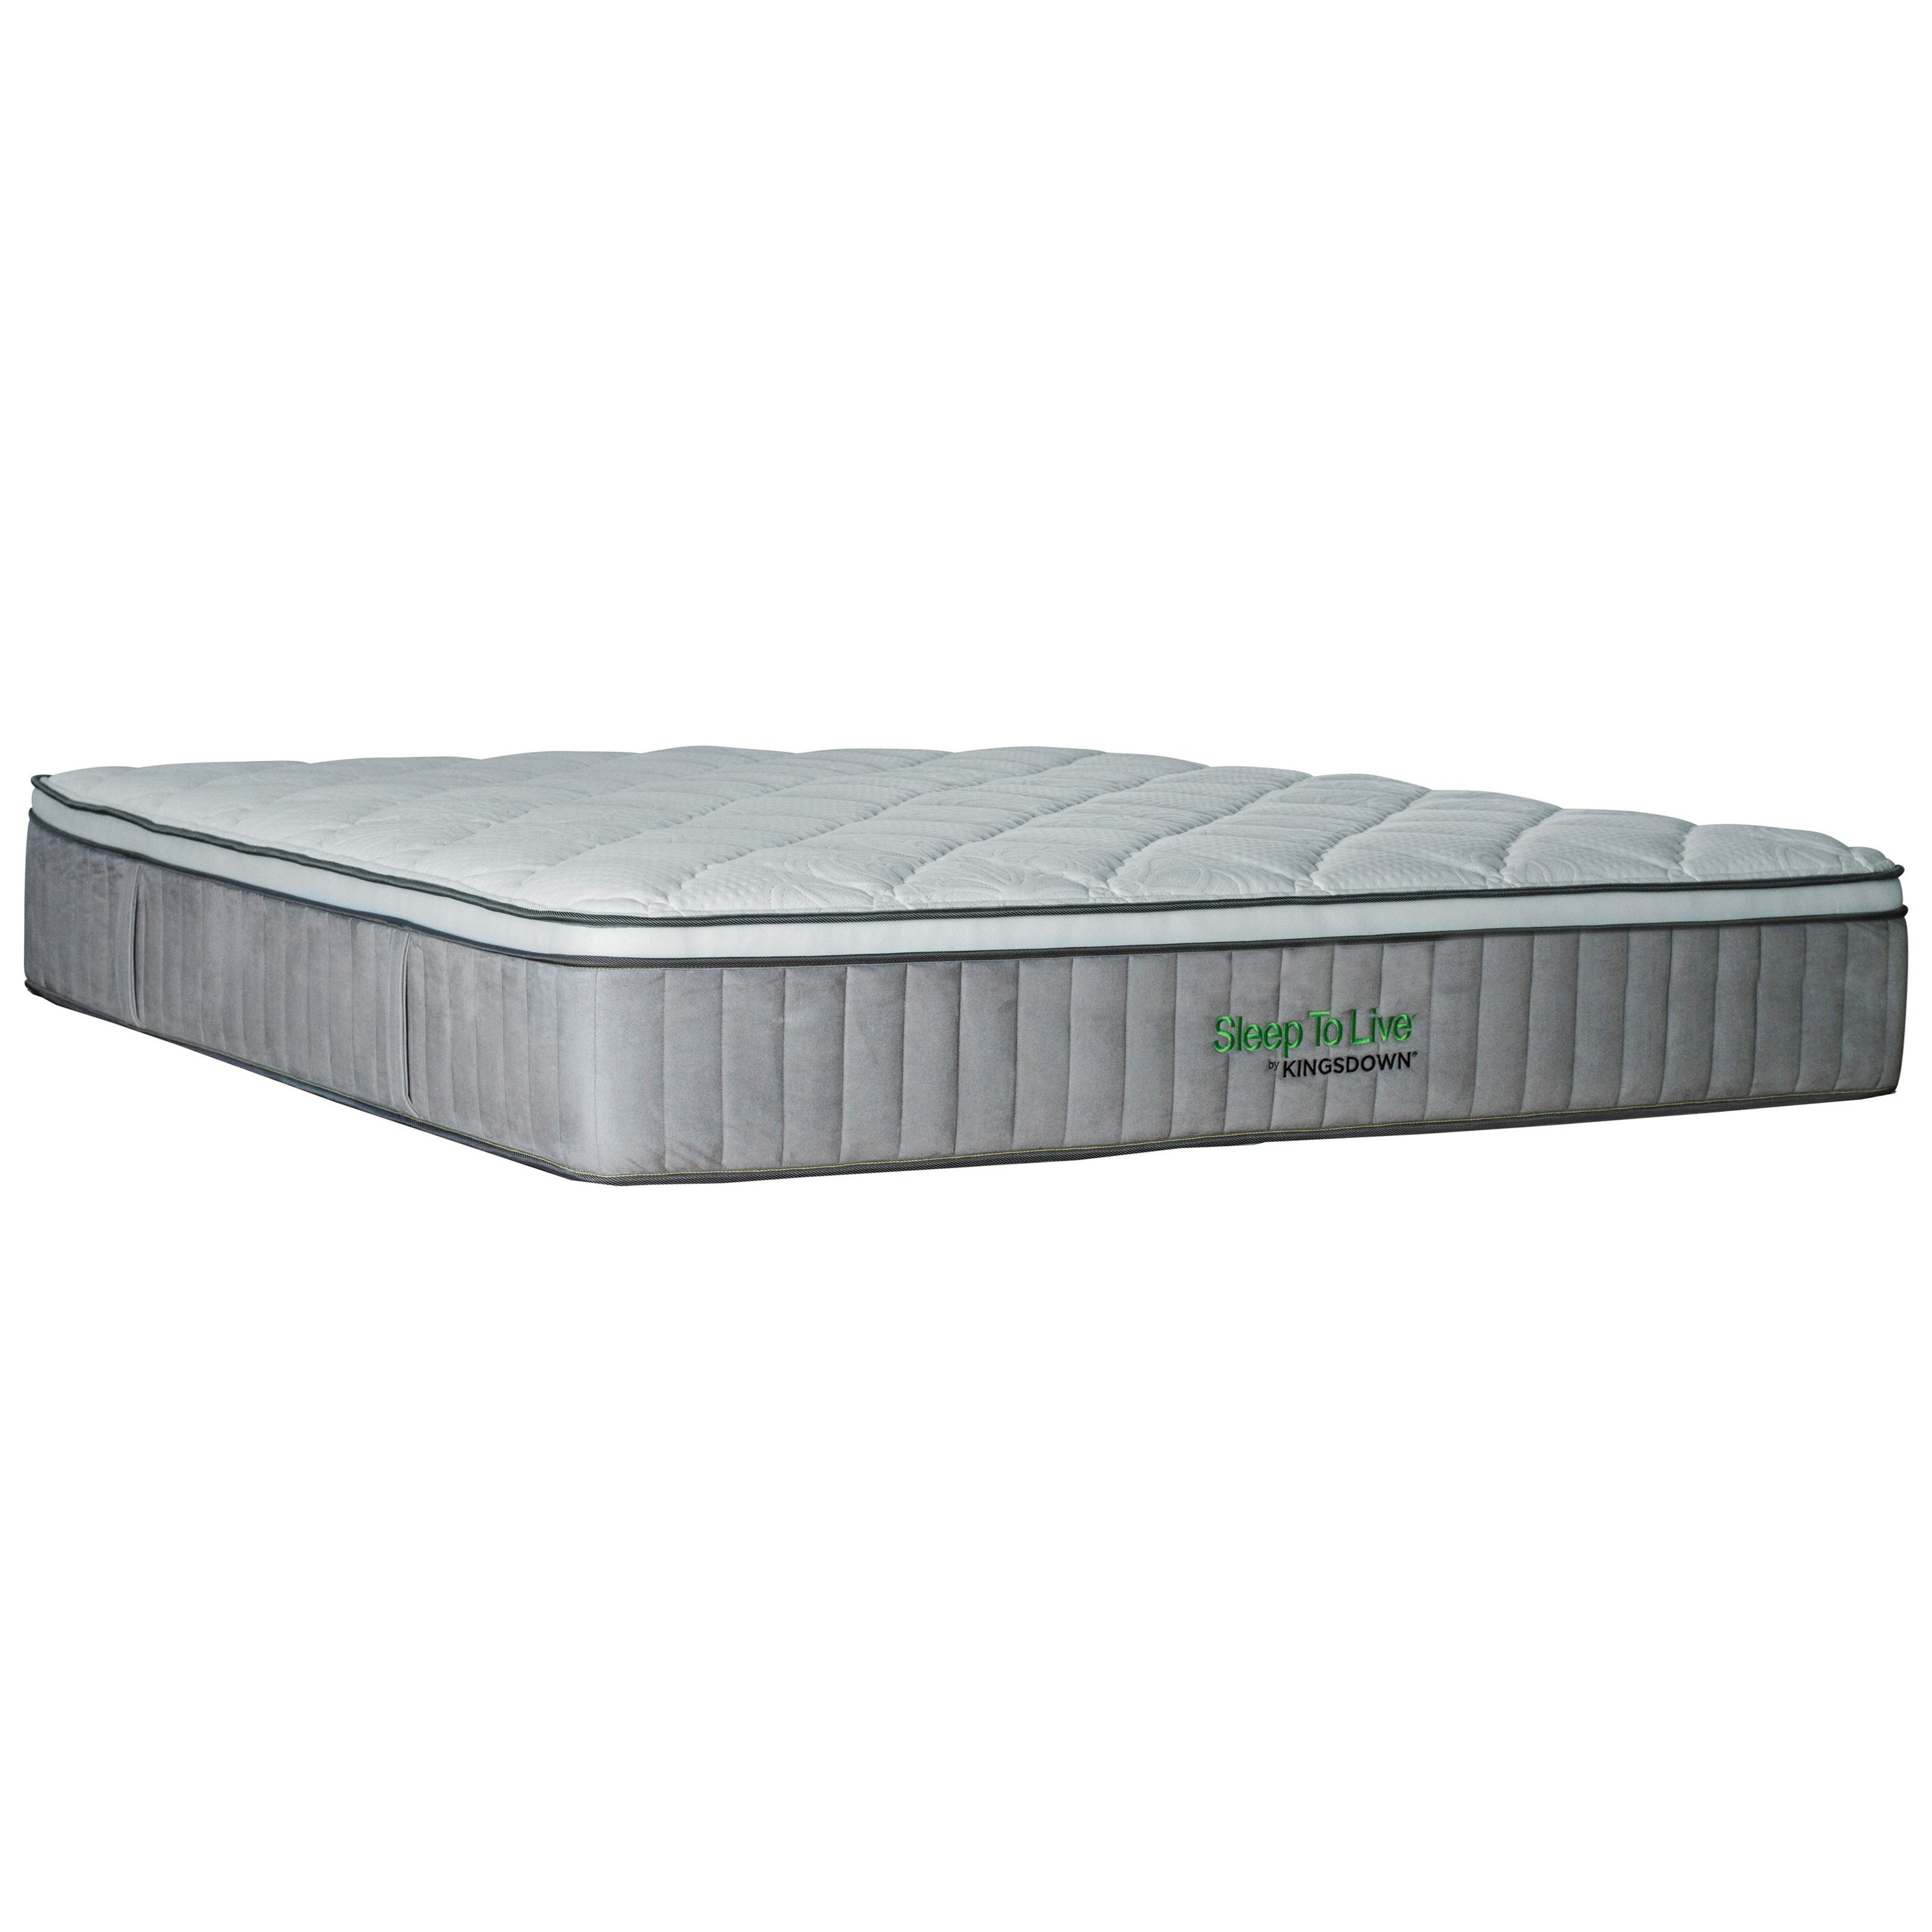 "Kingsdown 5224 Green 200 Series Queen 13.5"" Luxury Plush Mattress - Item Number: 5224-Q"